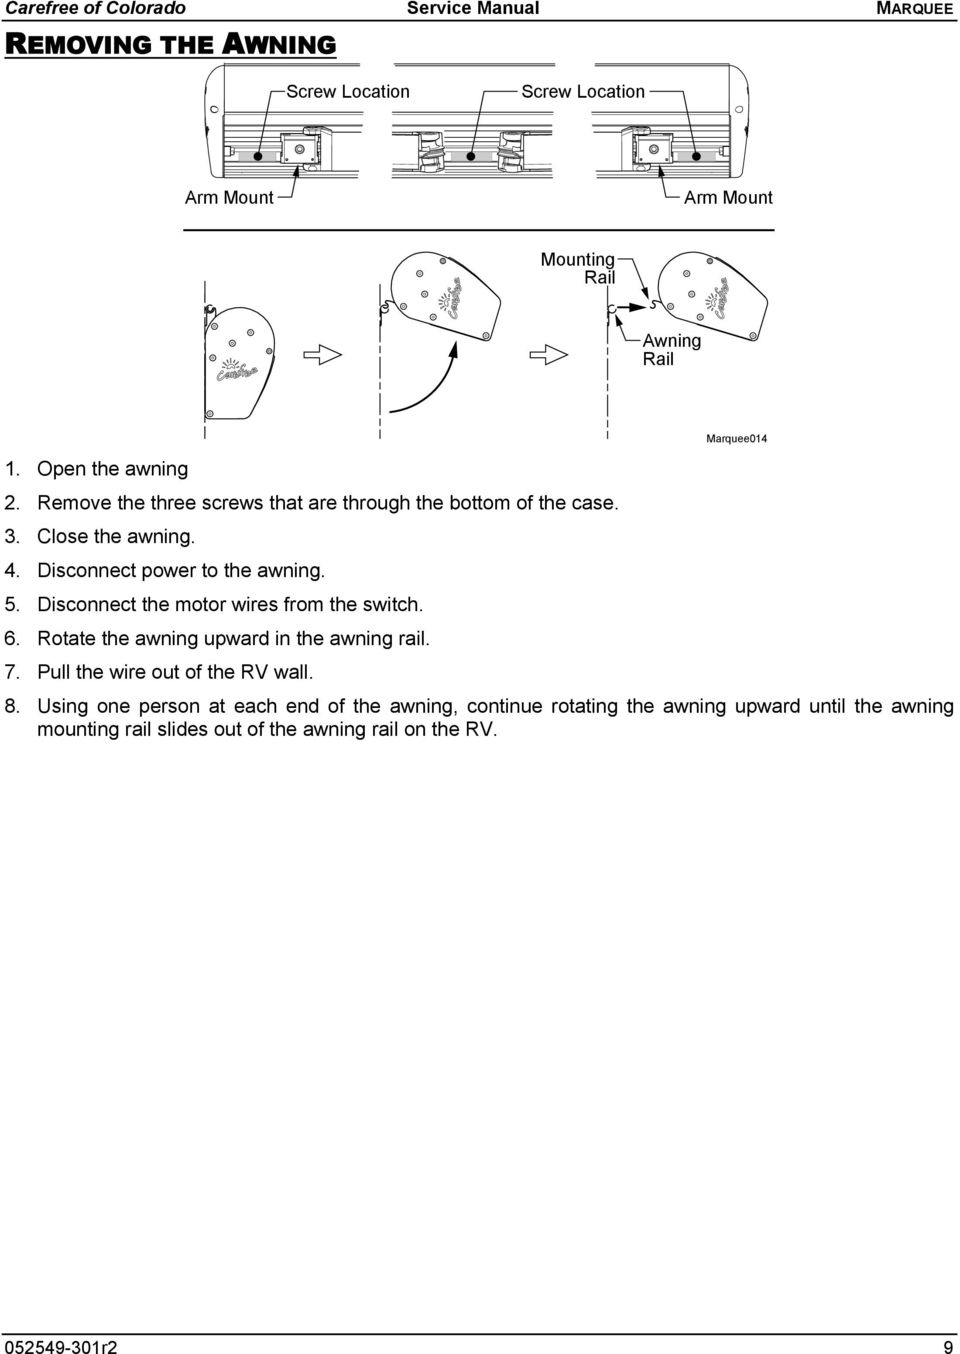 Window And Over The Door Otd Awnings Pdf Rv Awning Wiring Diagram Disconnect Power To 5 Motor Wires From Switch